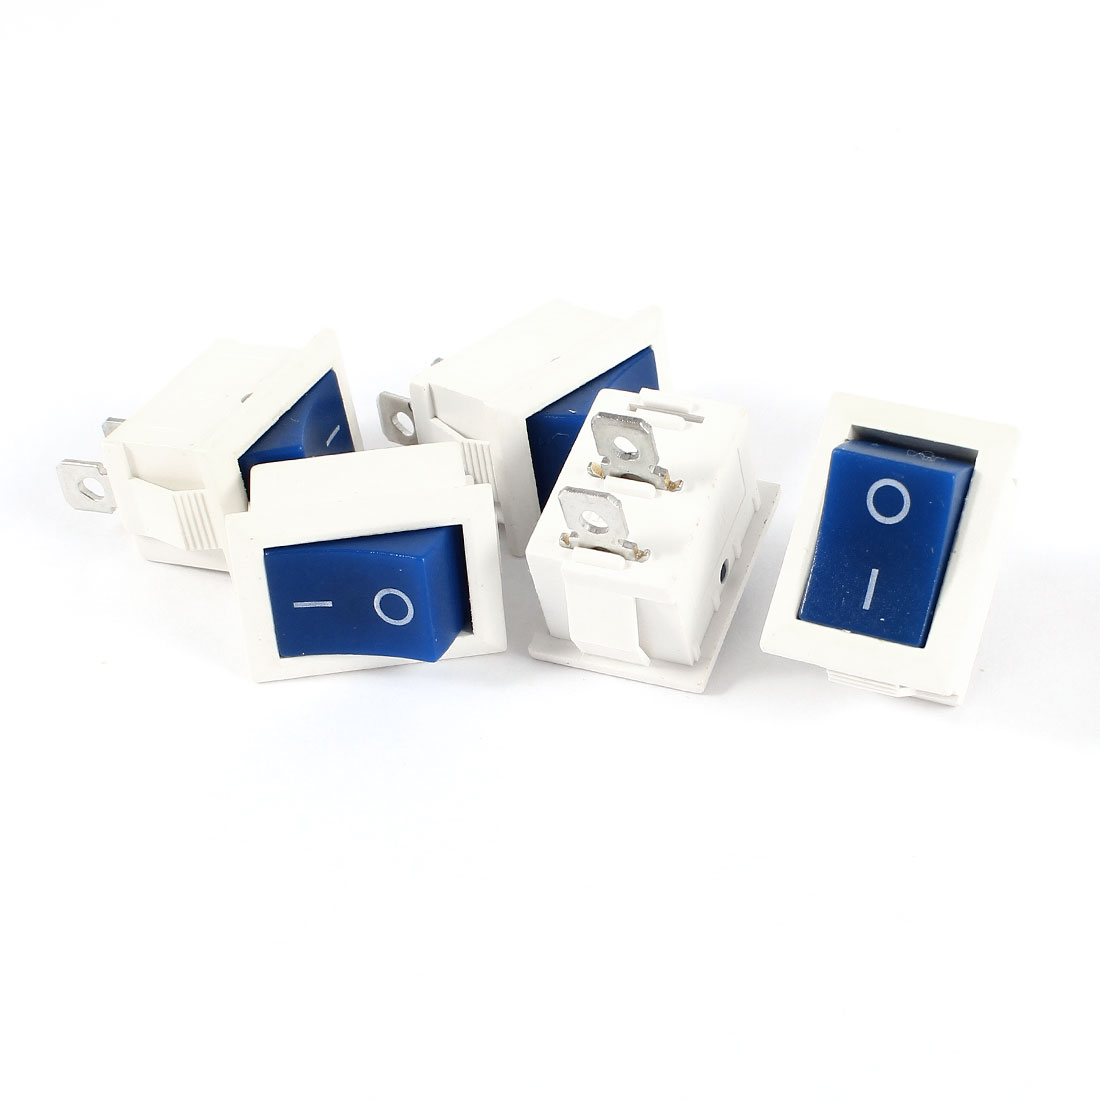 5 Pcs KCD1 AC 250V 6A 125V 10A 2Pin SPST Power ON/OFF Panel Mount Rocker Switch Blue White